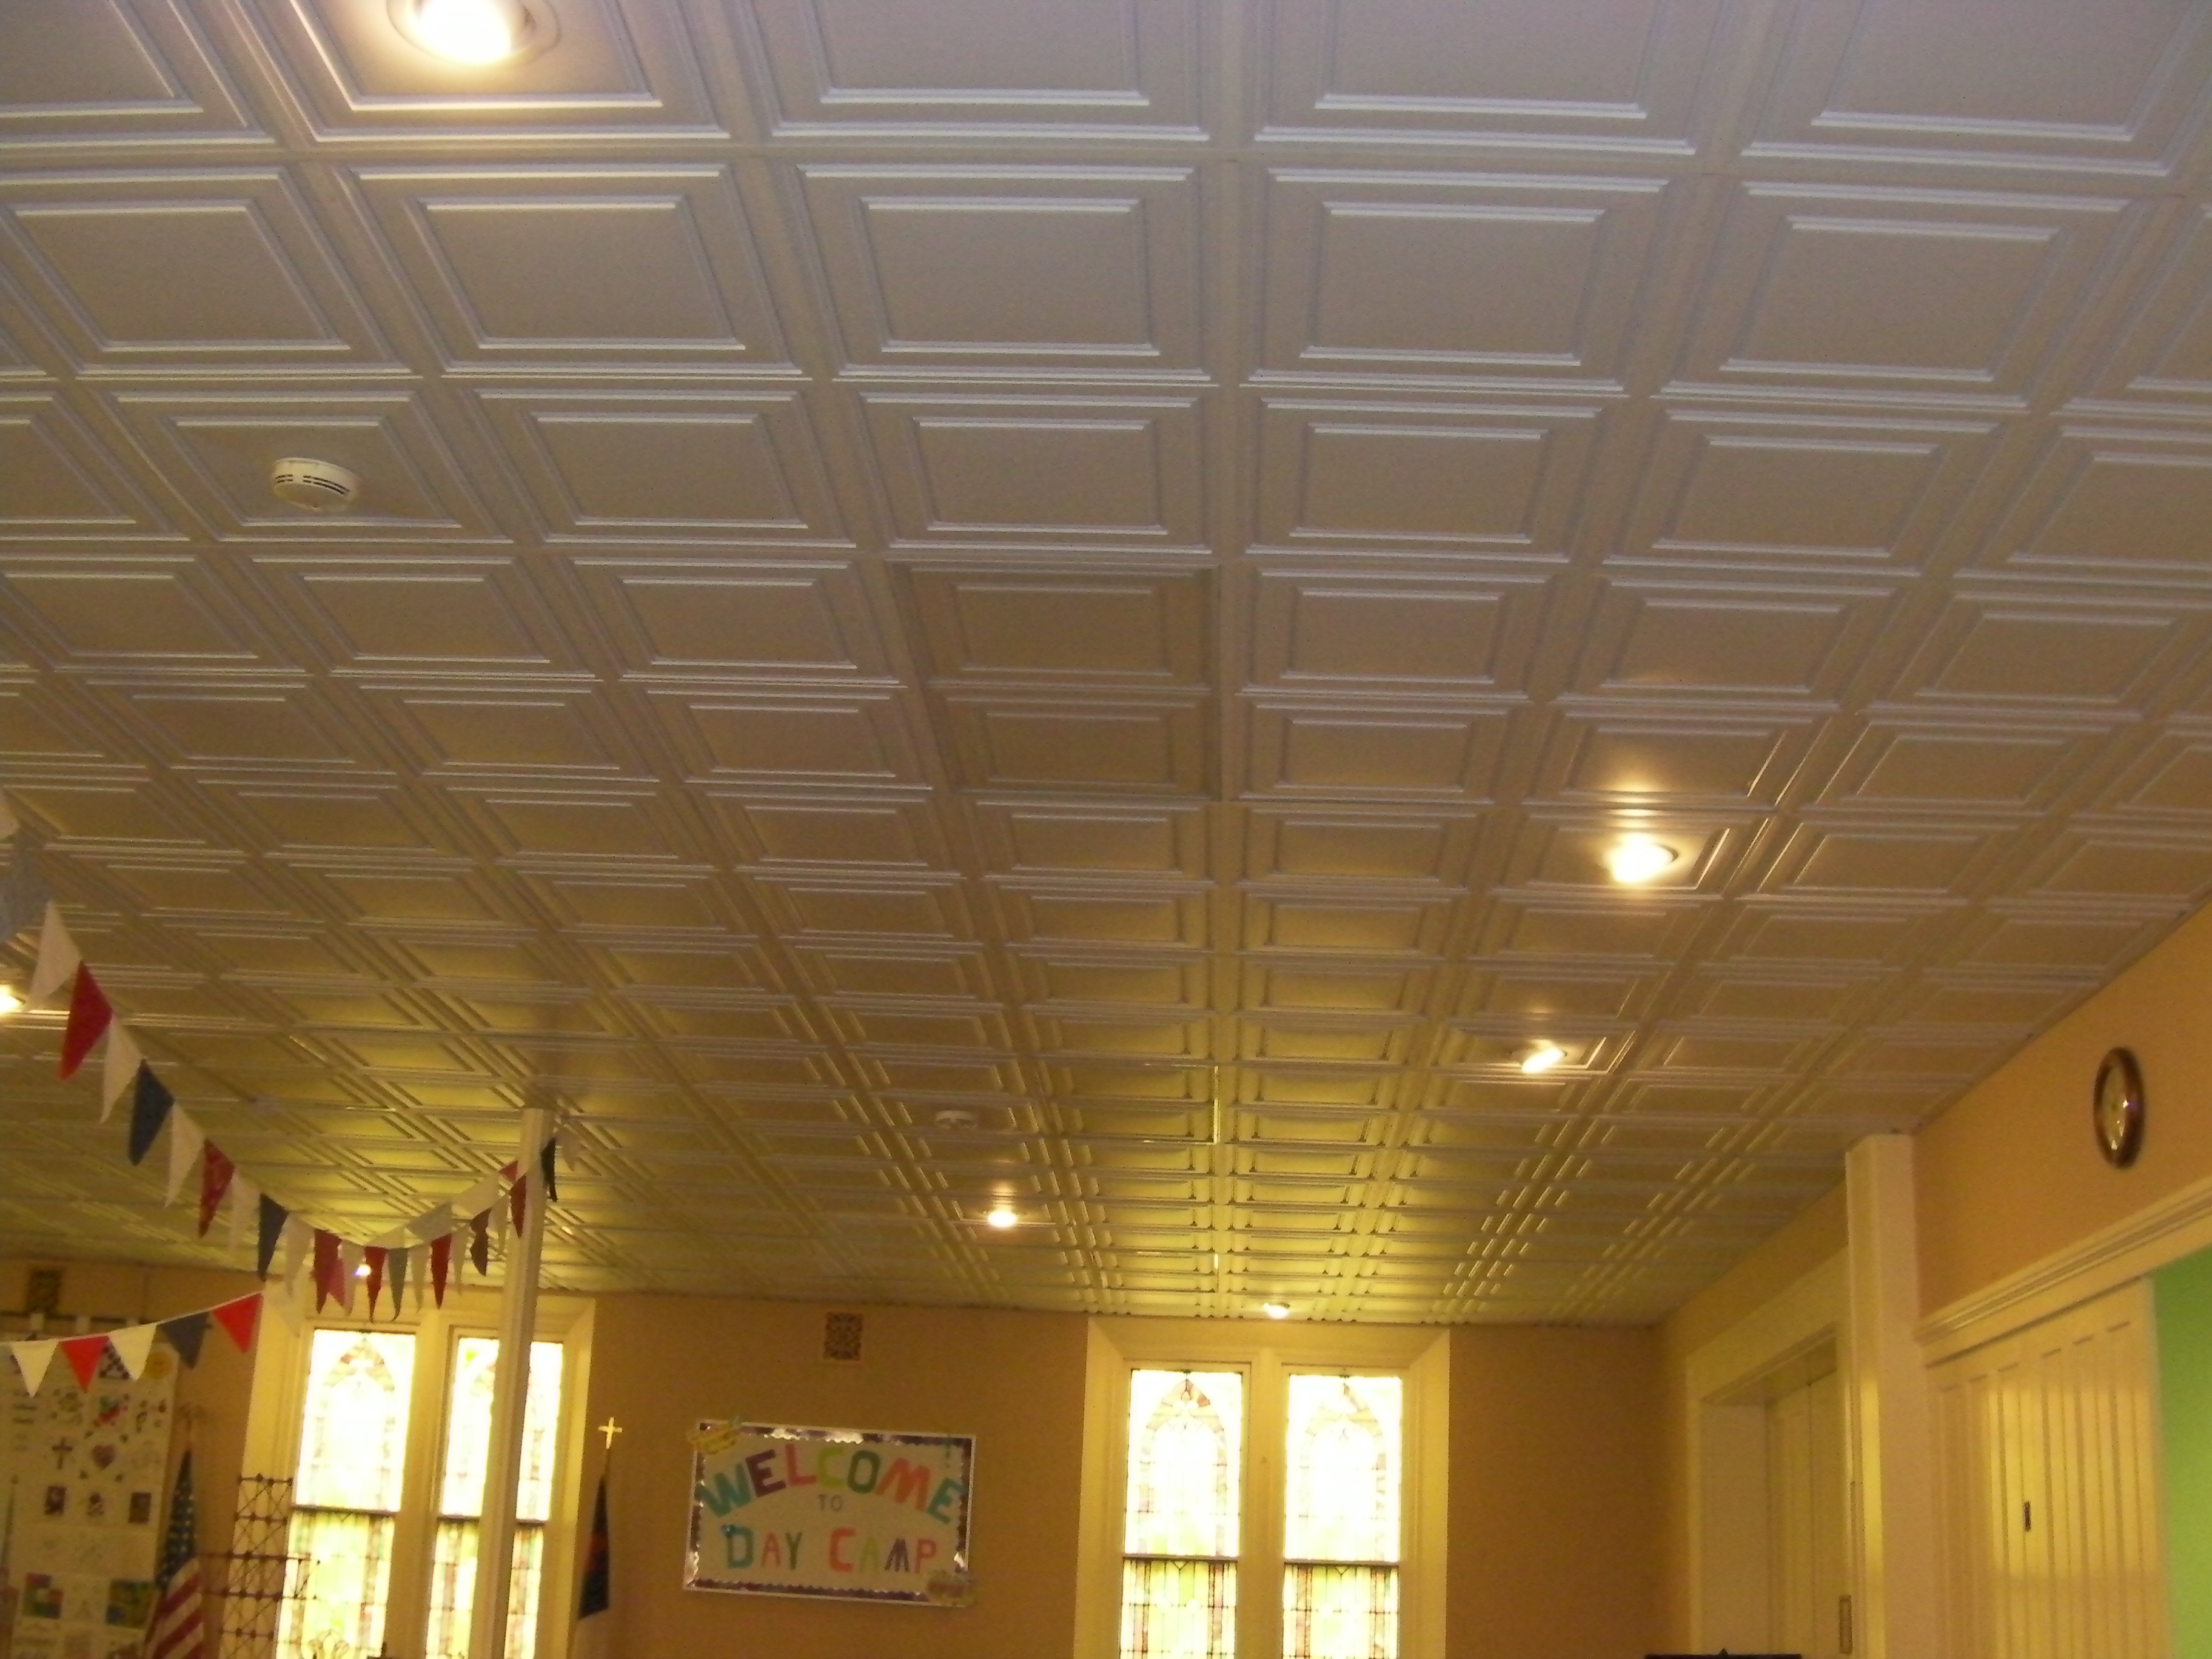 High quality stratford ceiling tiles at wholesale price isc ceilume stratford photo gallery dailygadgetfo Choice Image